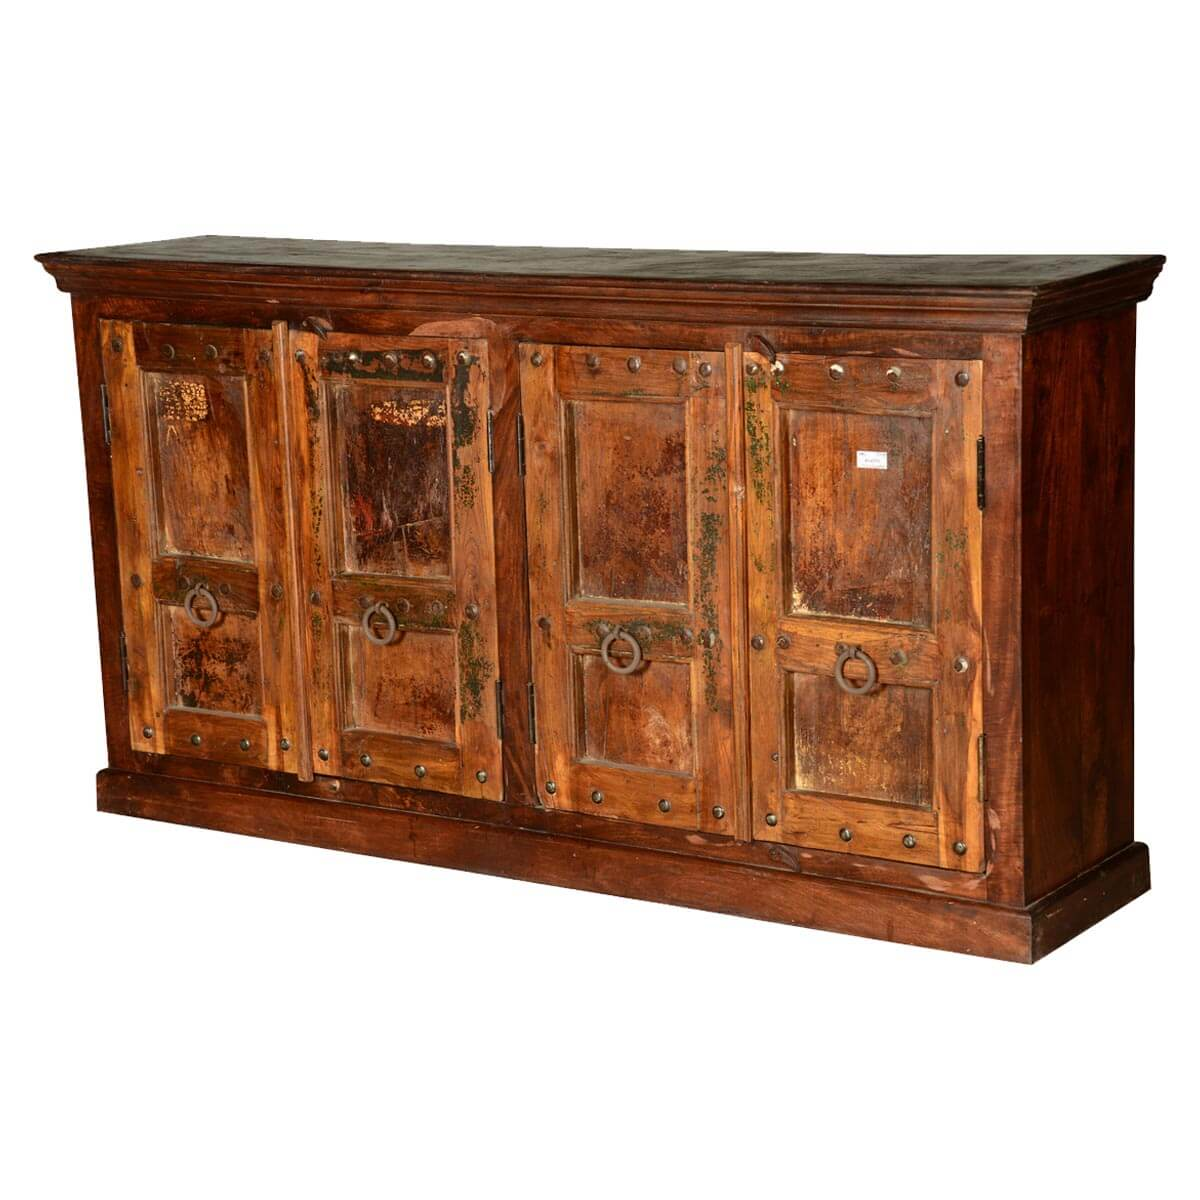 Rustic Gothic Traditions Reclaimed Wood Sideboard Cabinet : 6819 from www.sierralivingconcepts.com size 1200 x 1200 jpeg 182kB